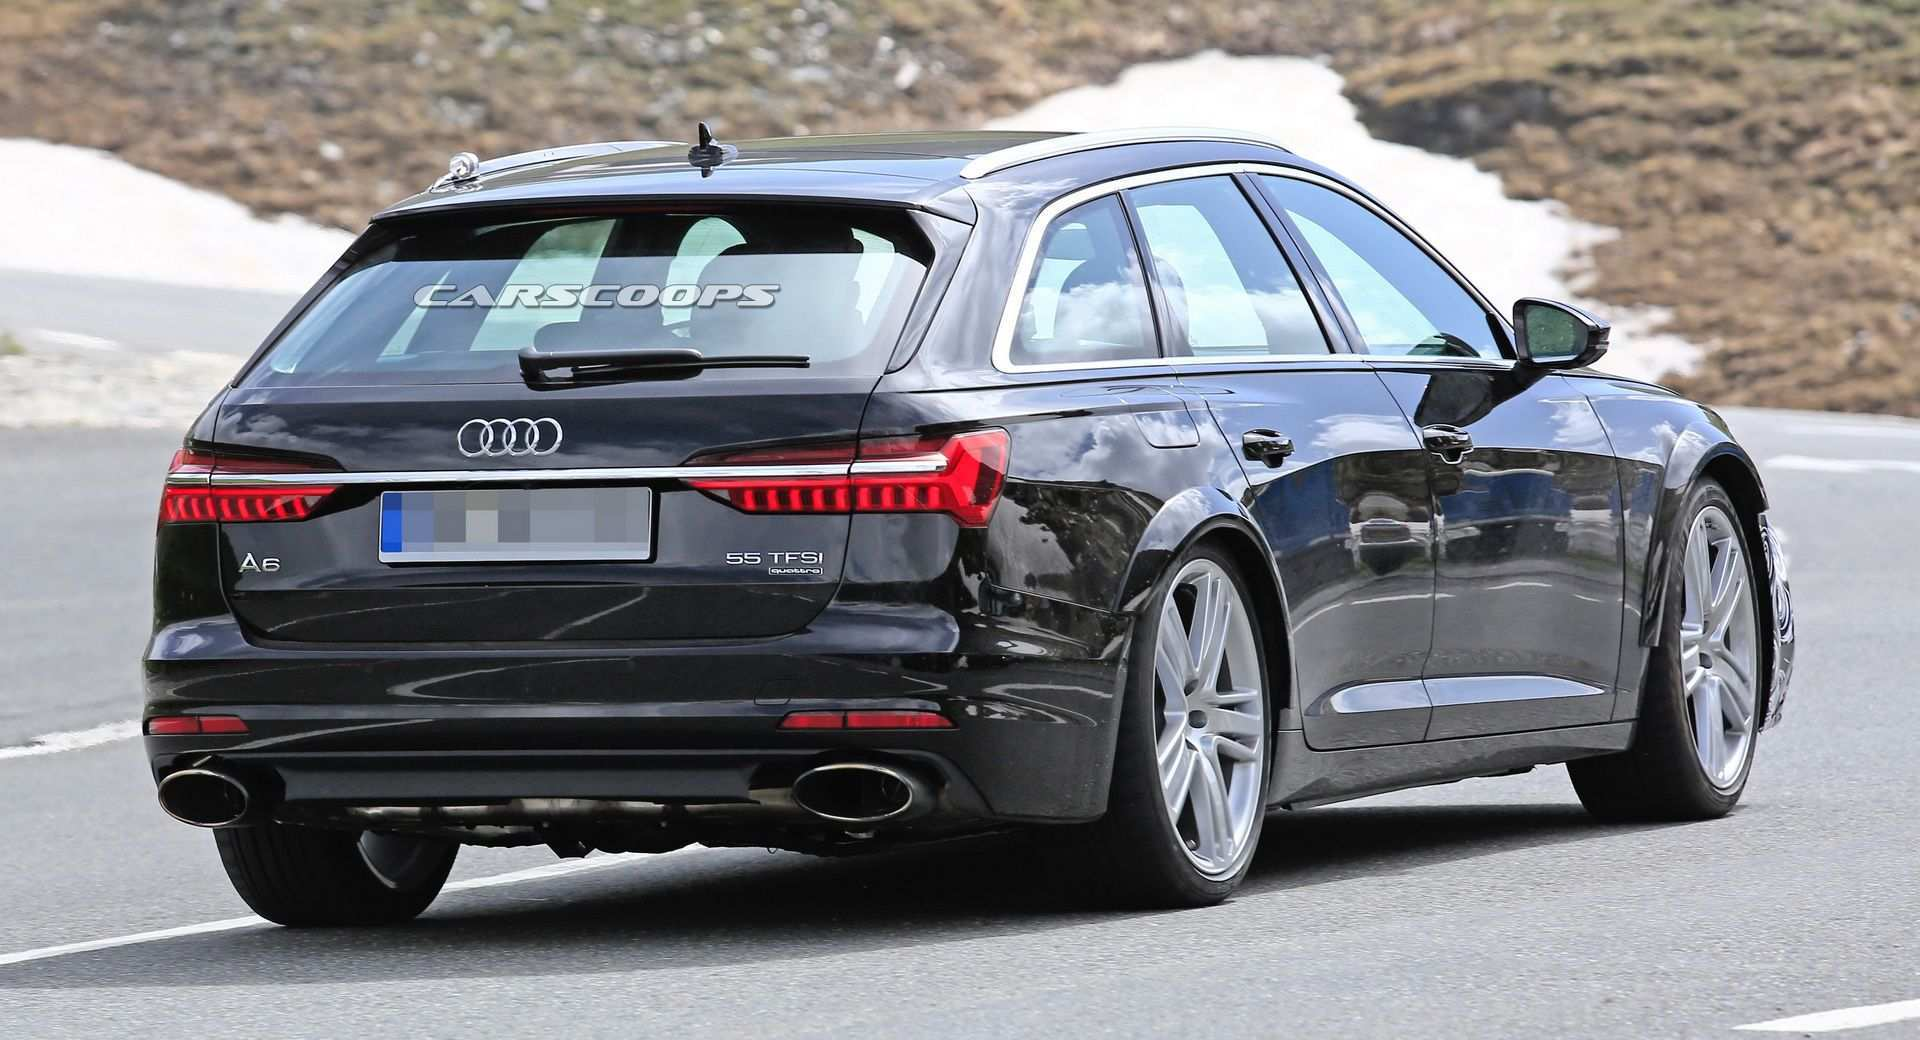 69 All New Audi Rs6 Avant 2020 New Review